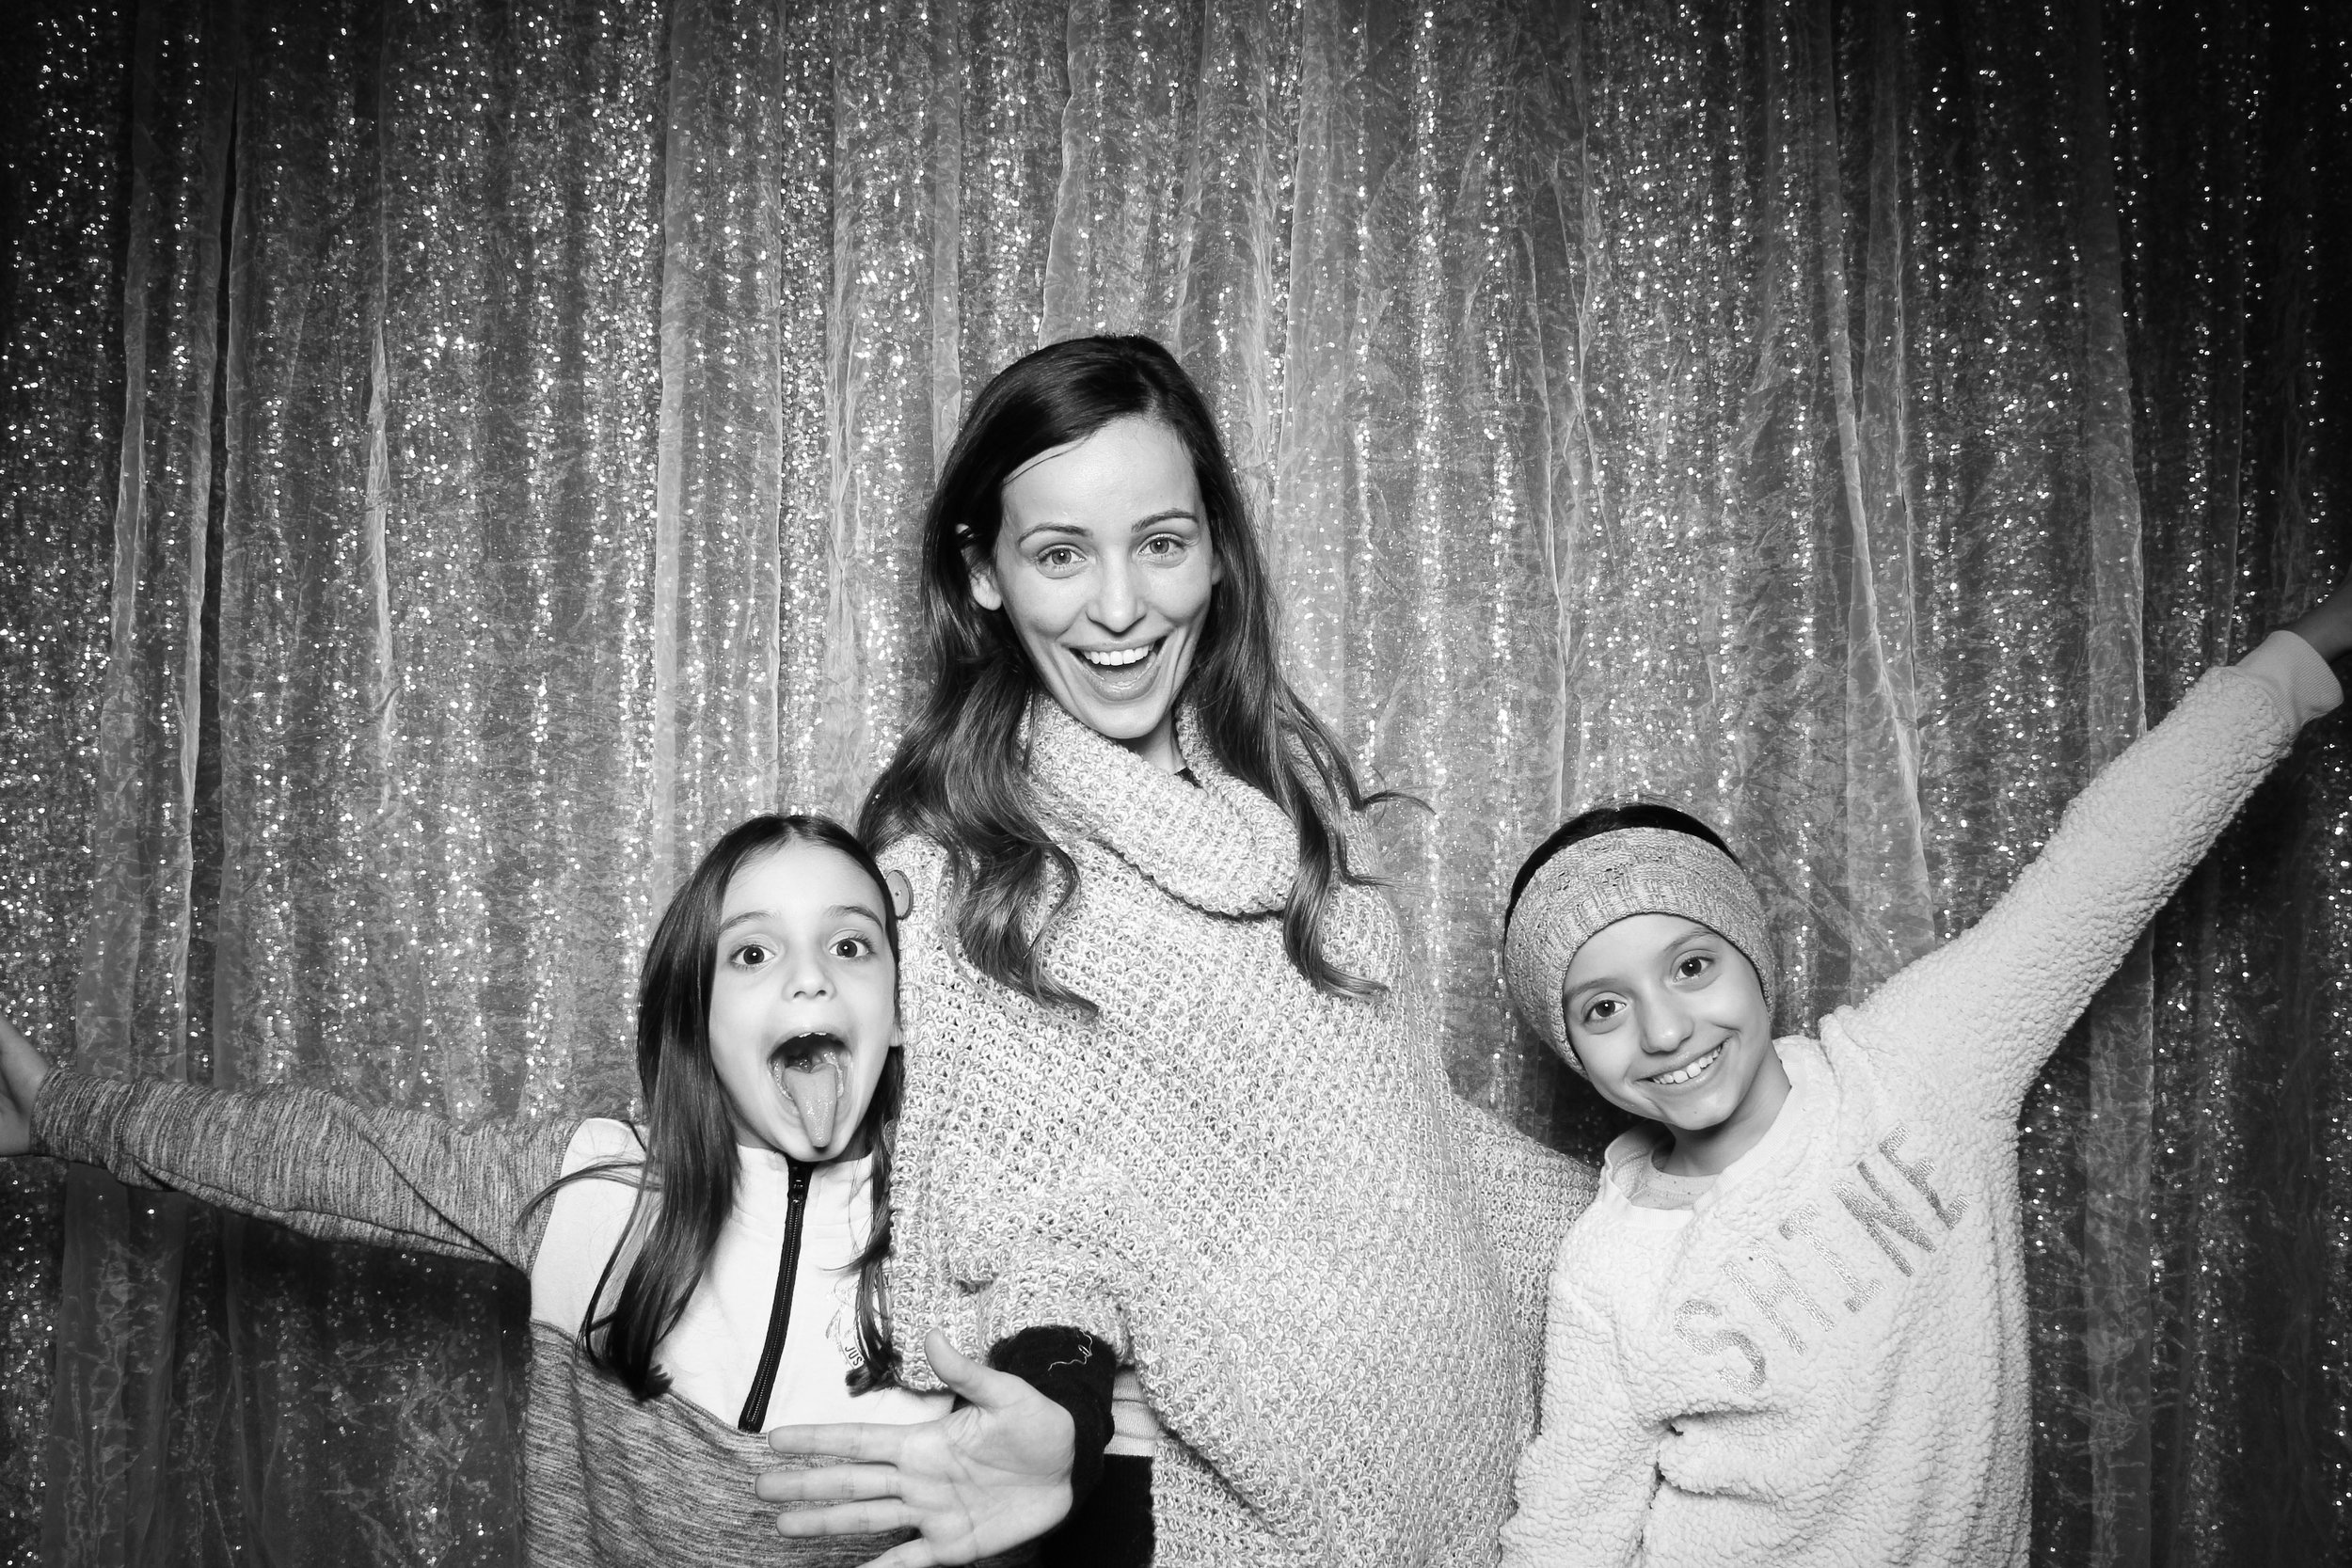 Chicago_Vintage_Wedding_Photobooth_Downers_Grove_01.jpg